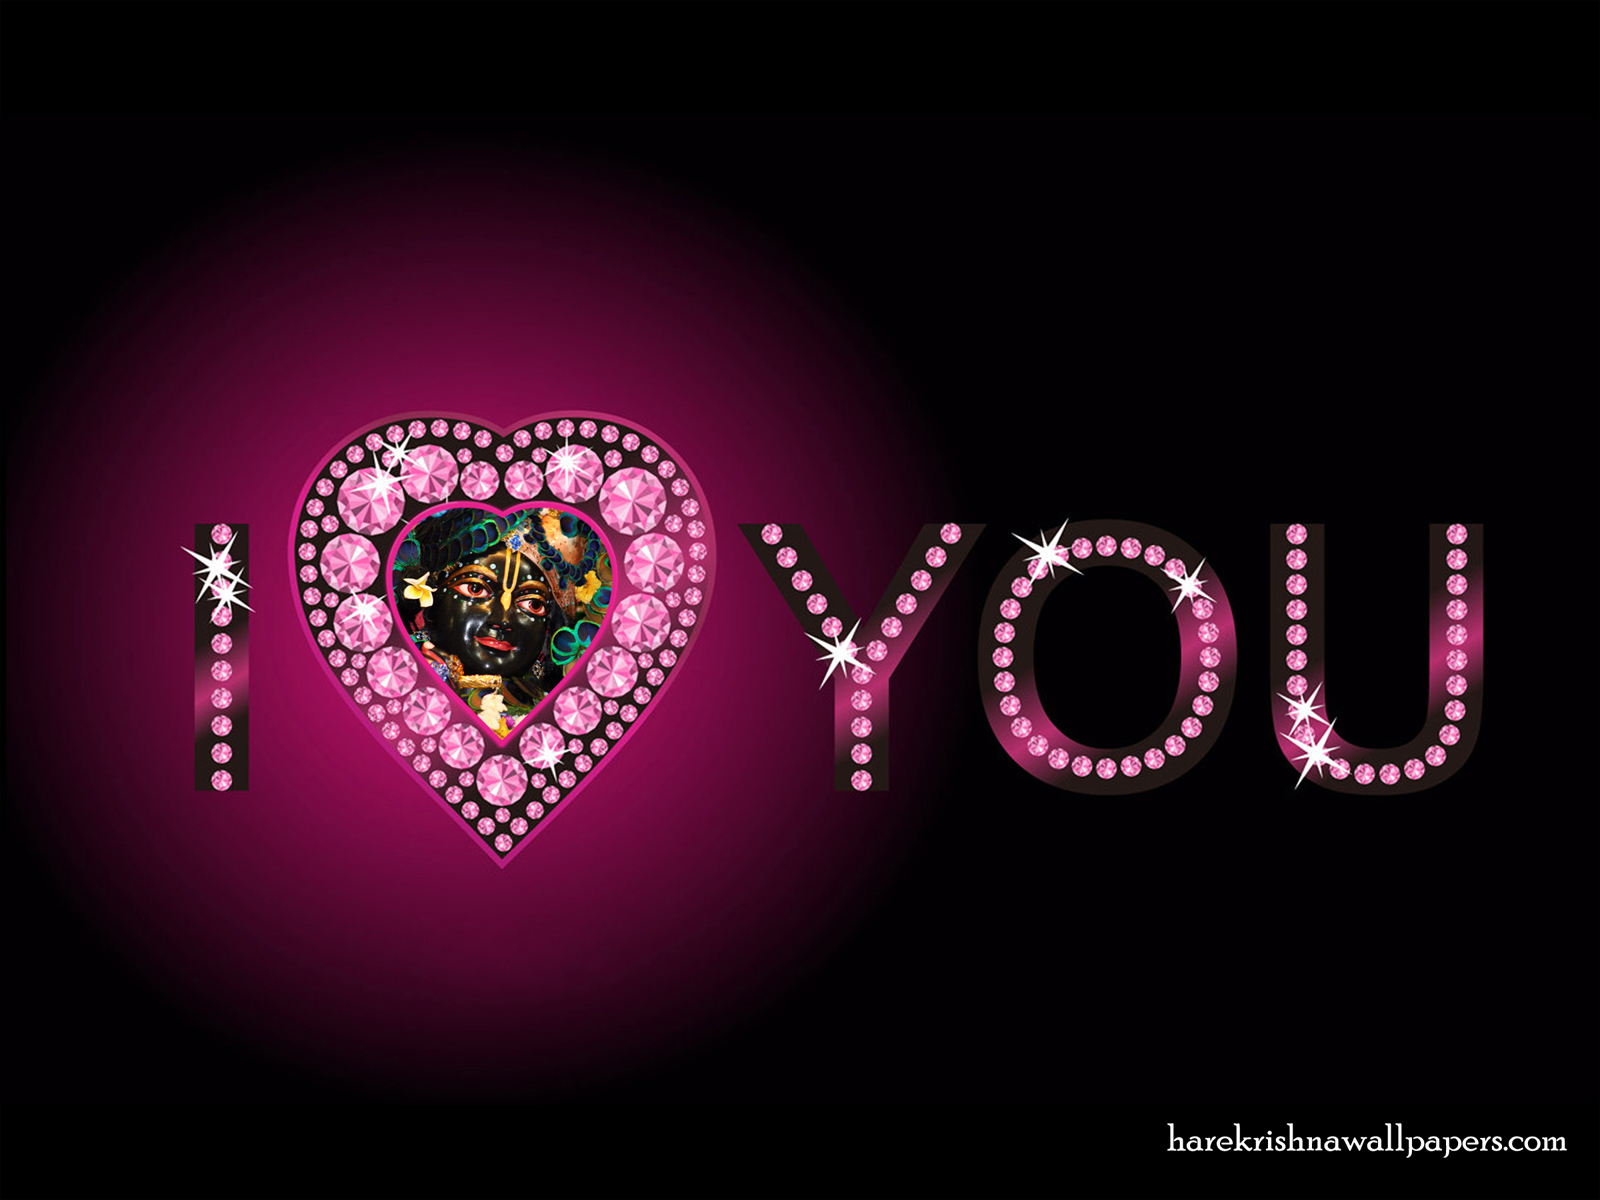 I Love You Shyamsundar Wallpaper (003) Size1600x1200 Download